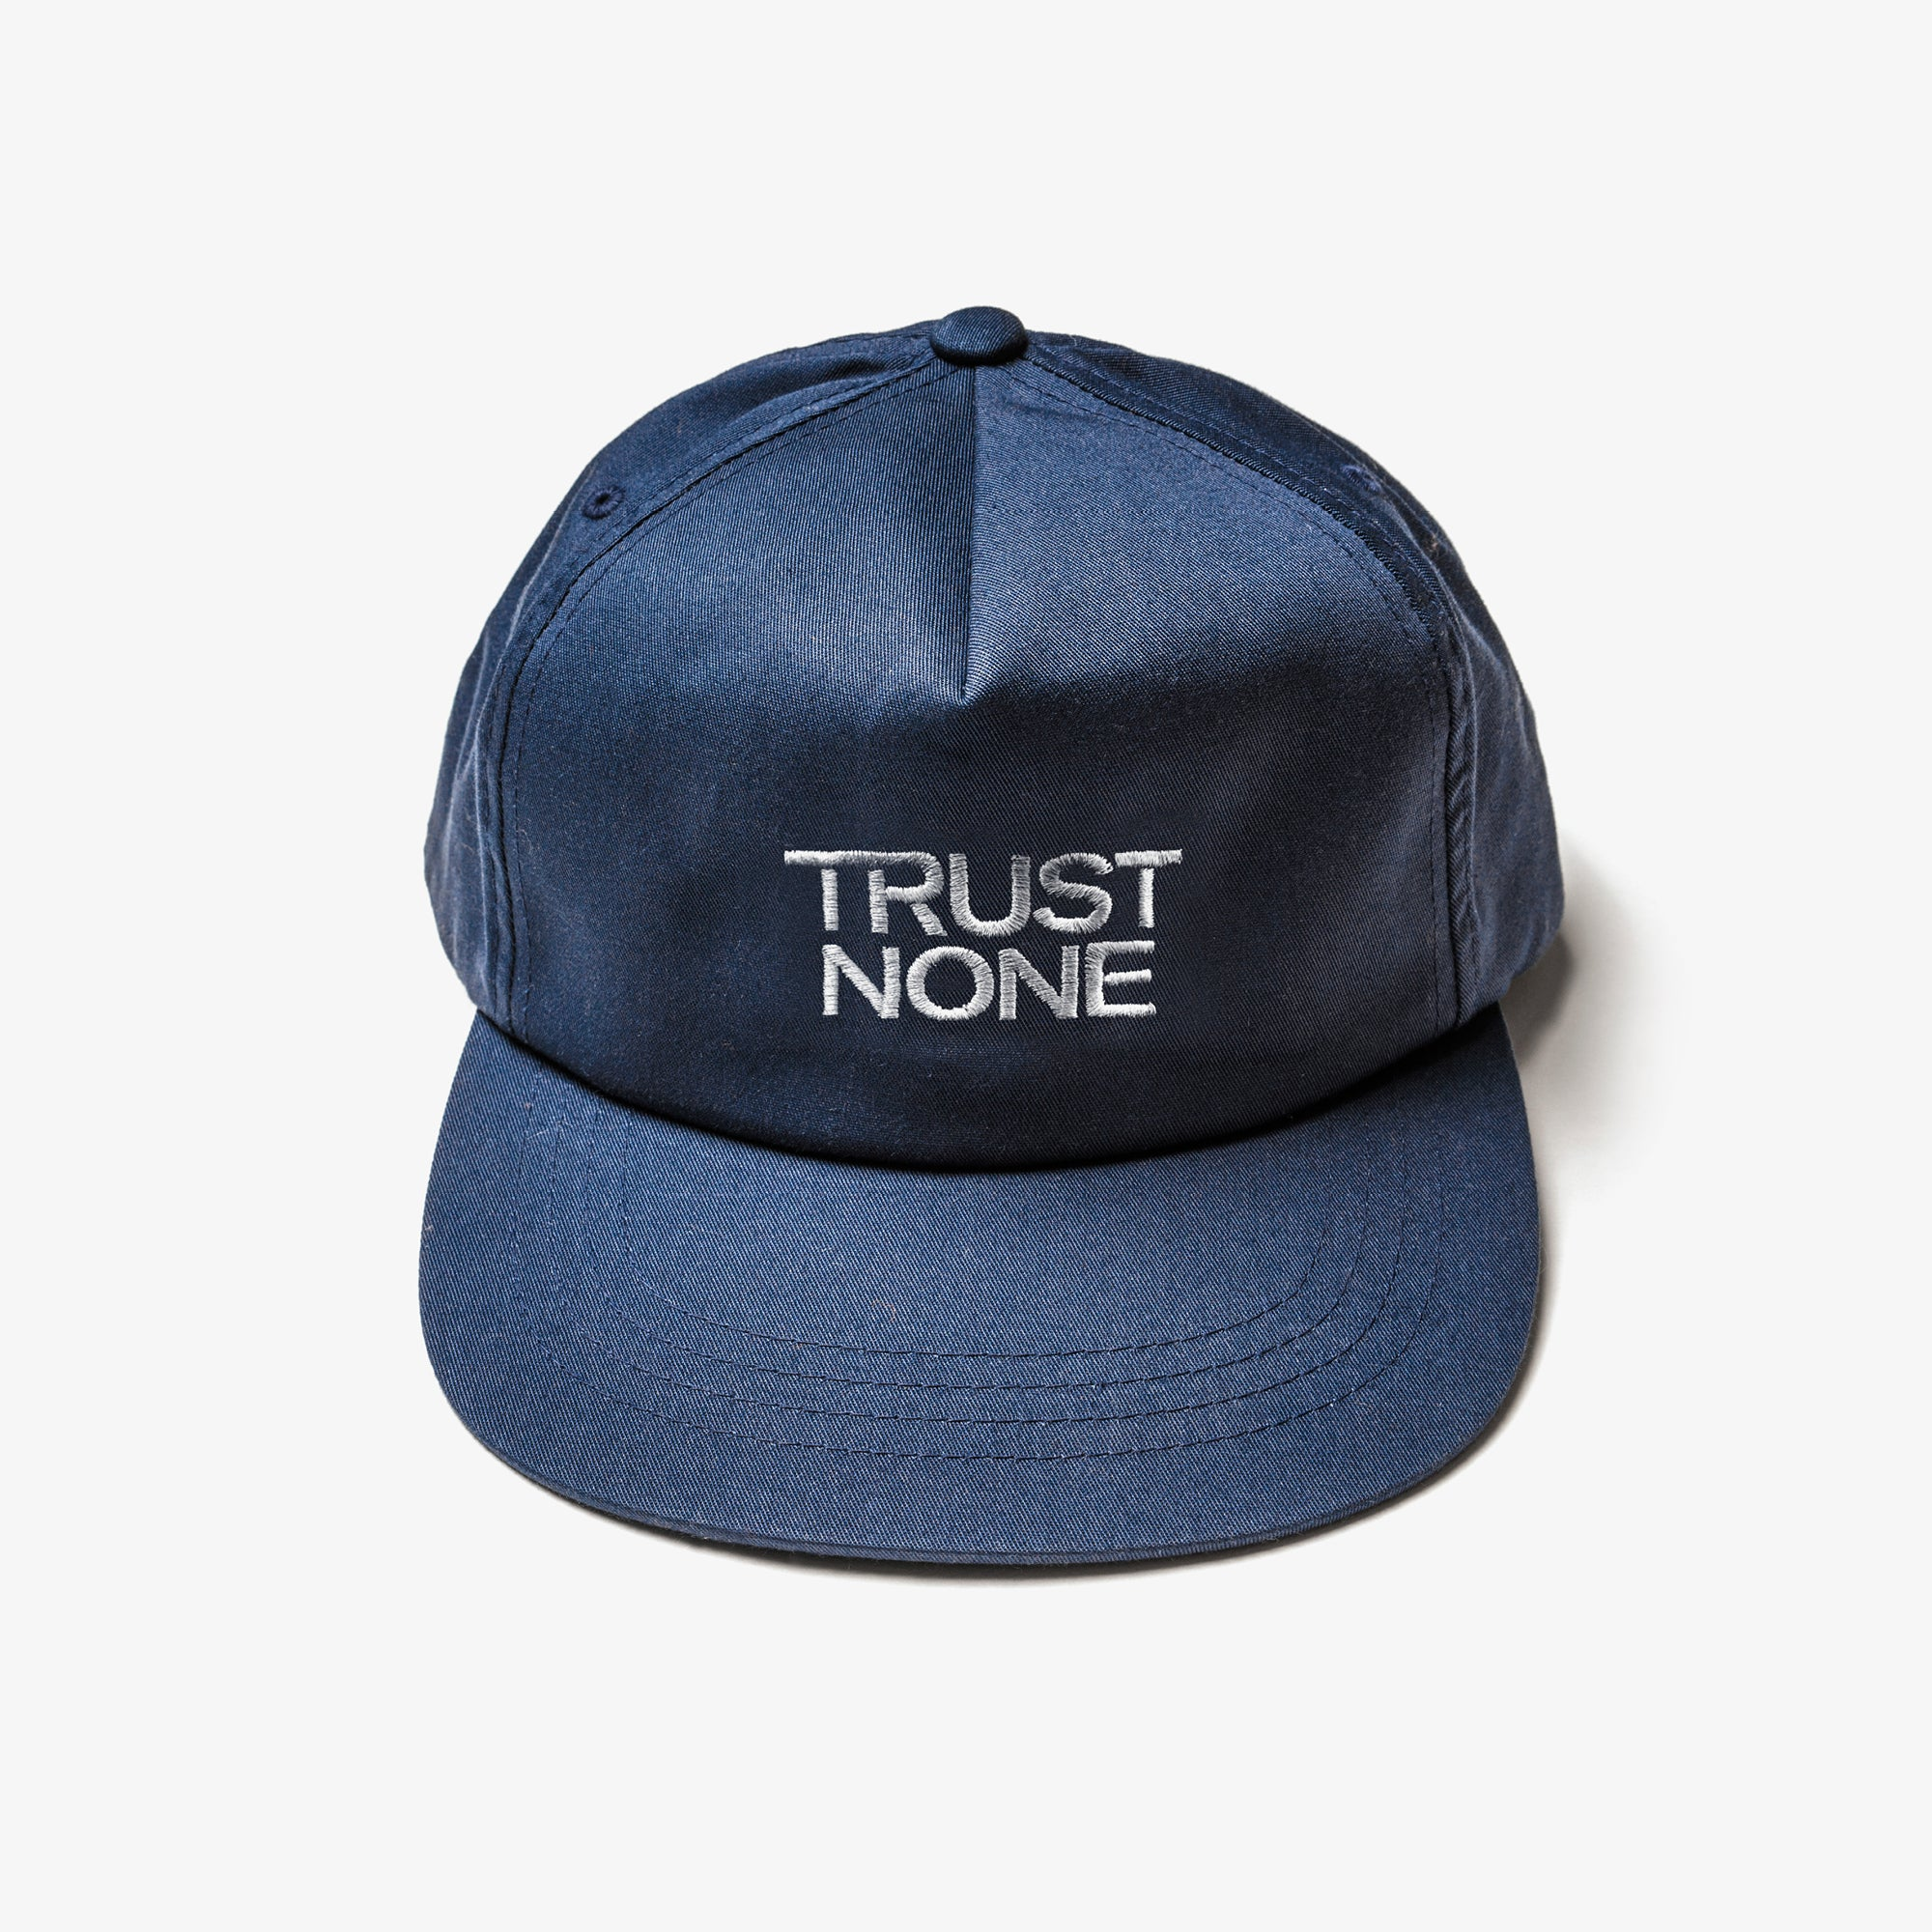 TRUST NONE 5-PANEL HAT - NAVY